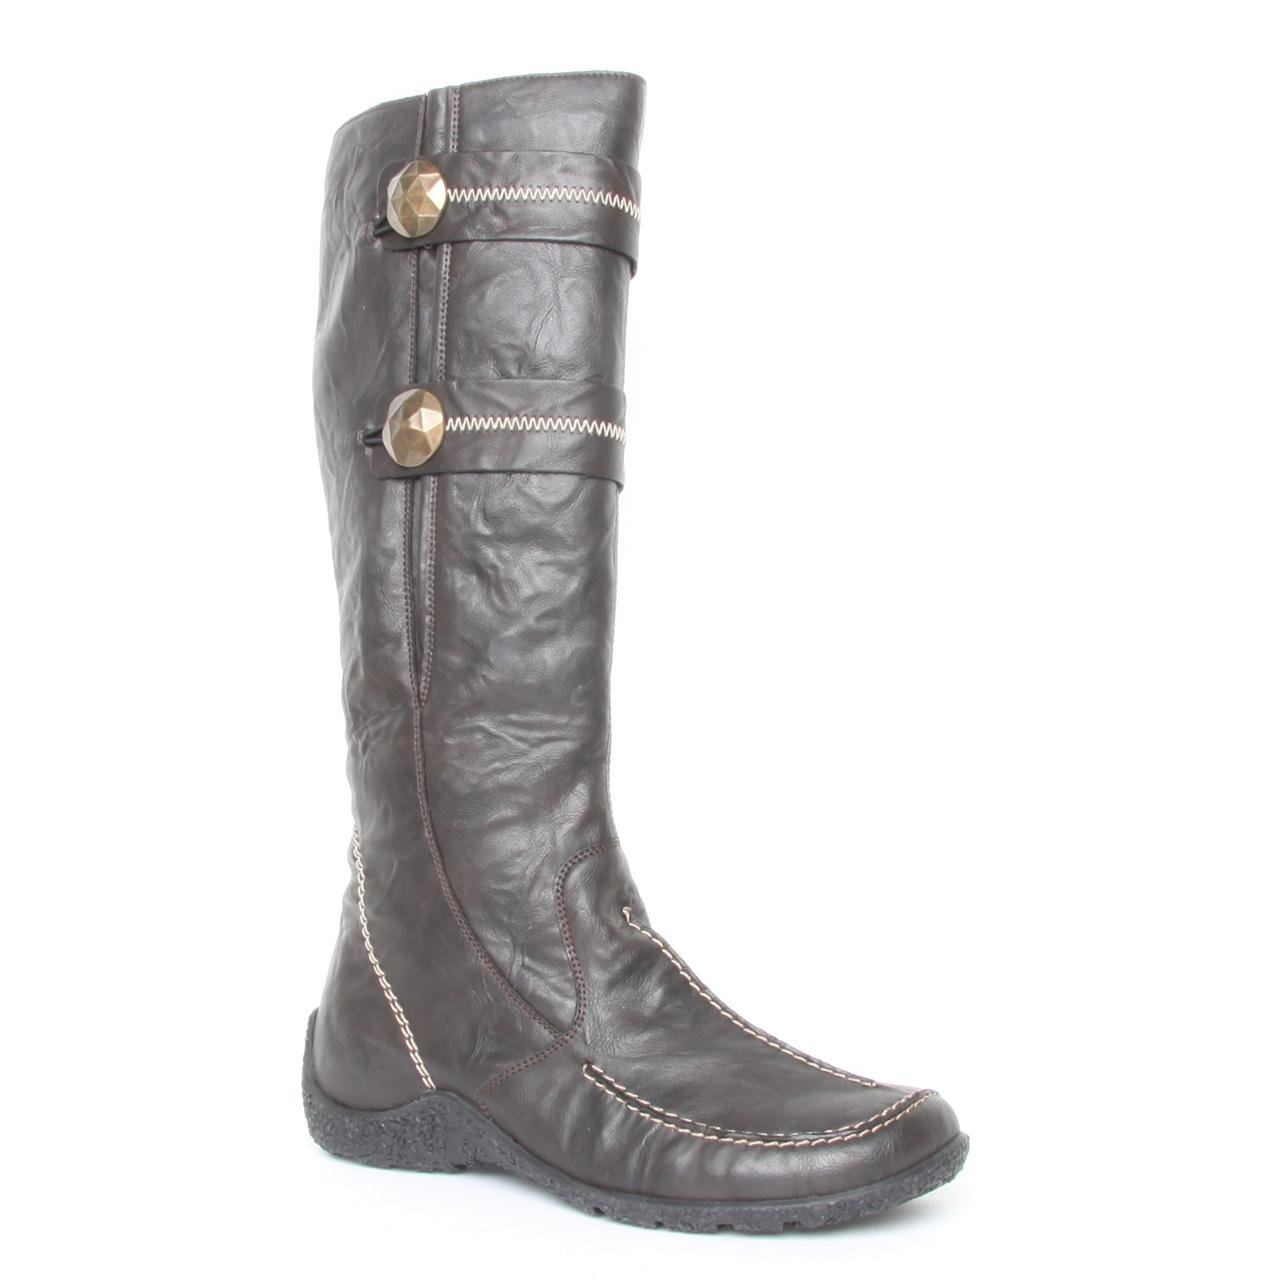 authentic quality sells great deals on fashion Ladies Rieker Astrid Brown Knee High Boots Size 6.5: Amazon ...